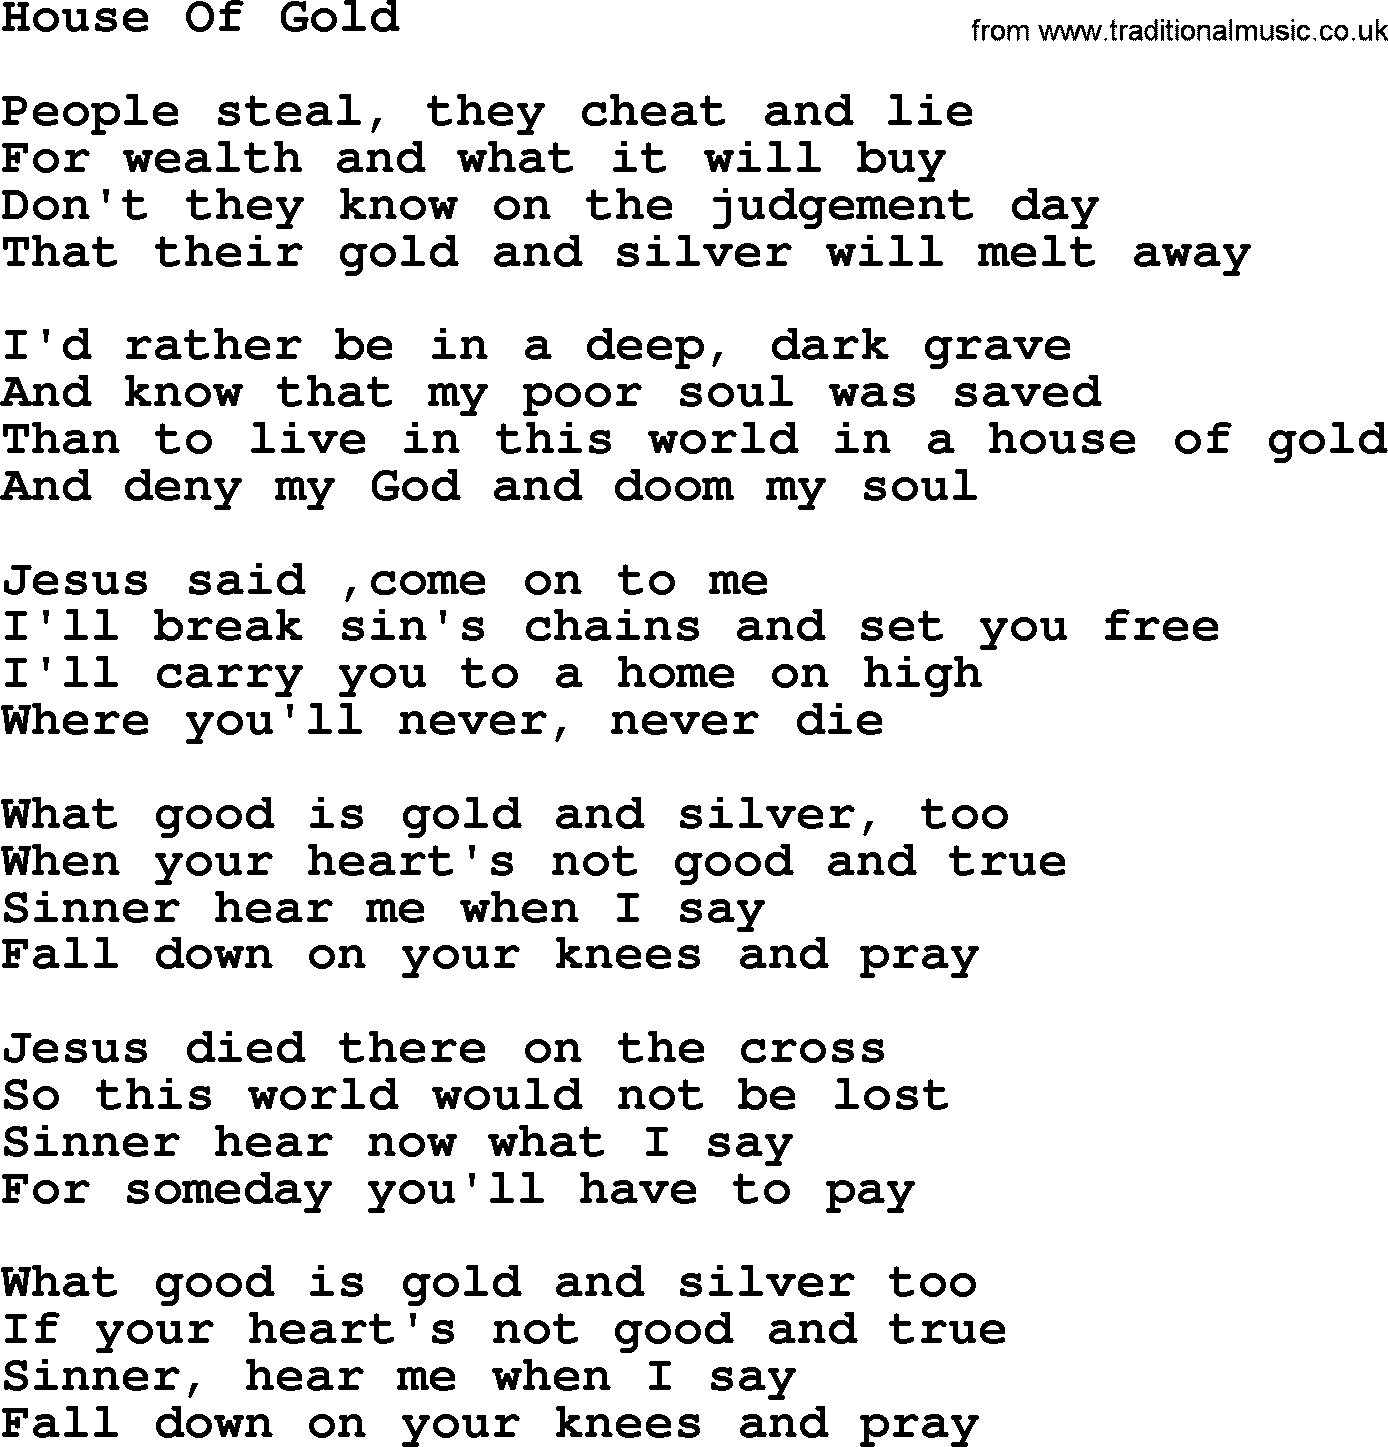 Willie Nelson song: House Of Gold, lyrics